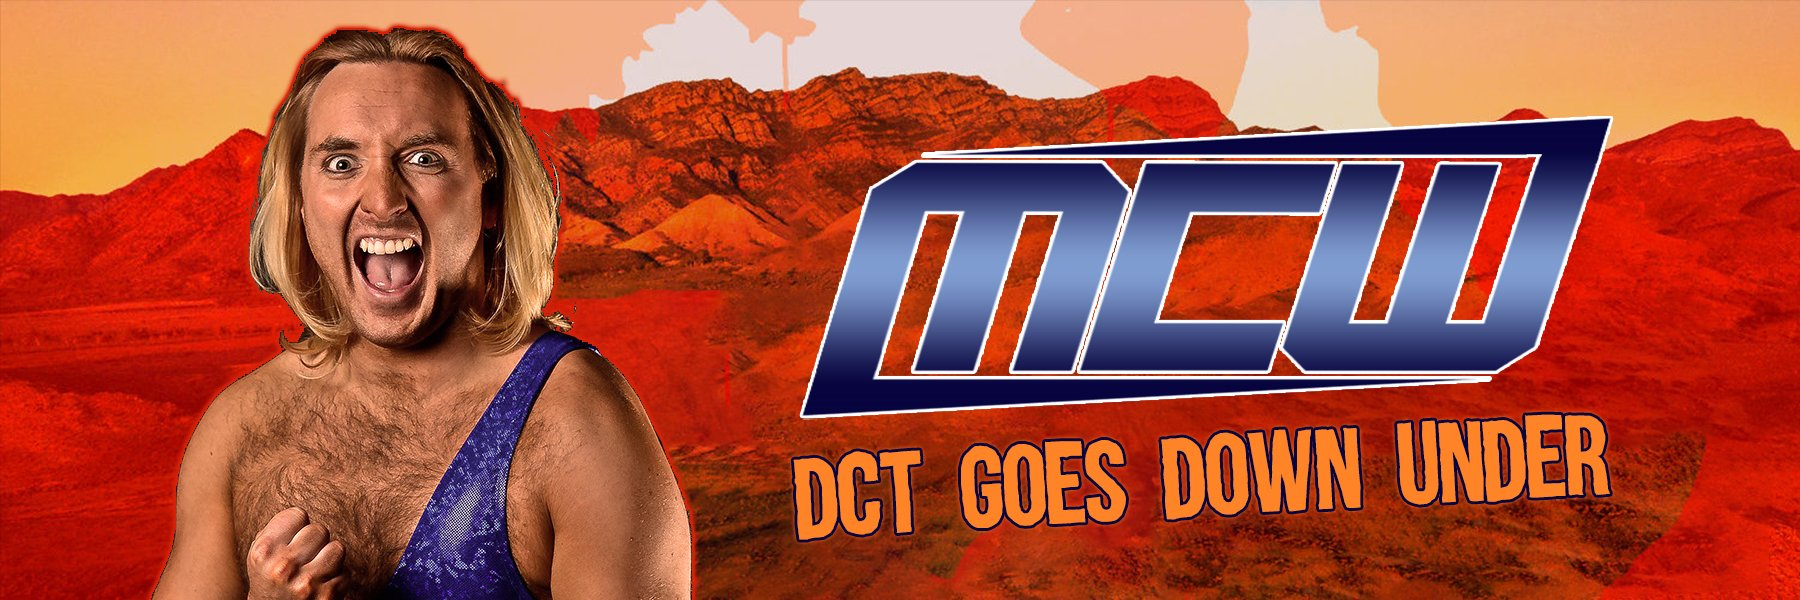 Watch DCT's exploits in Oz with our Melbourne City Wrestling section!